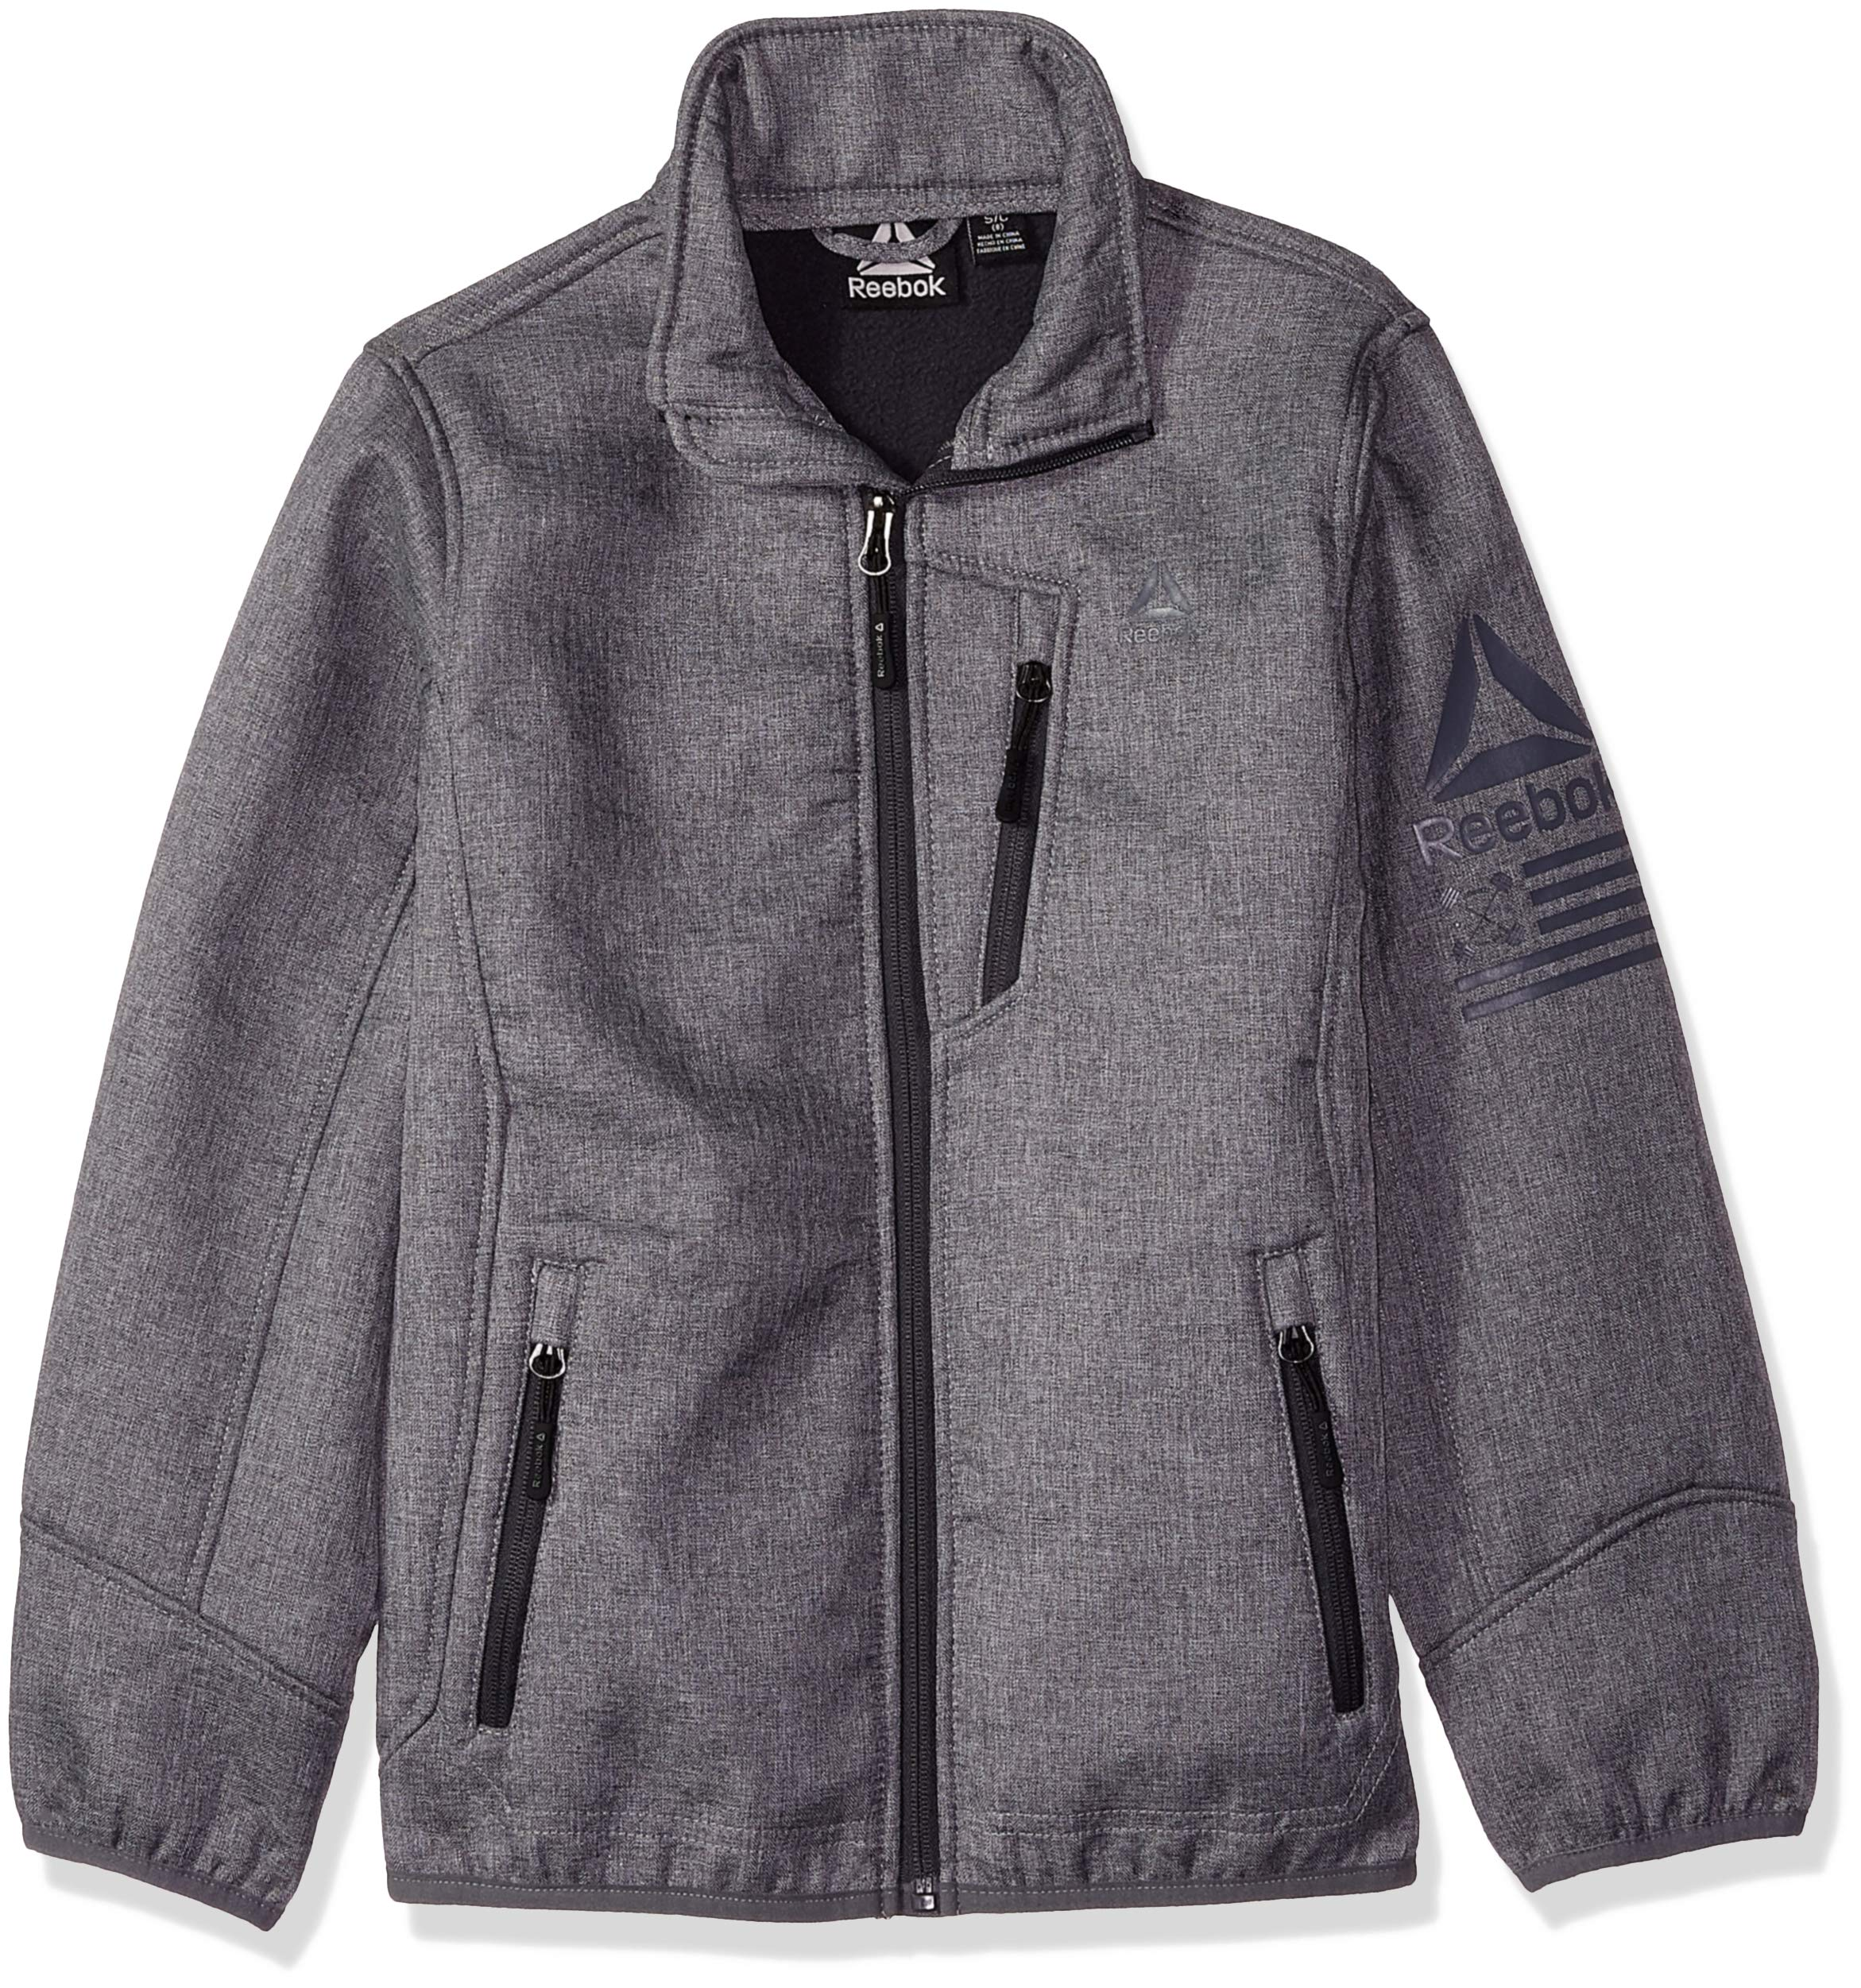 Reebok Boys' Little Active Softshell Jacket with Sleeve Detail, Heather Grey 4 by Reebok (Image #1)